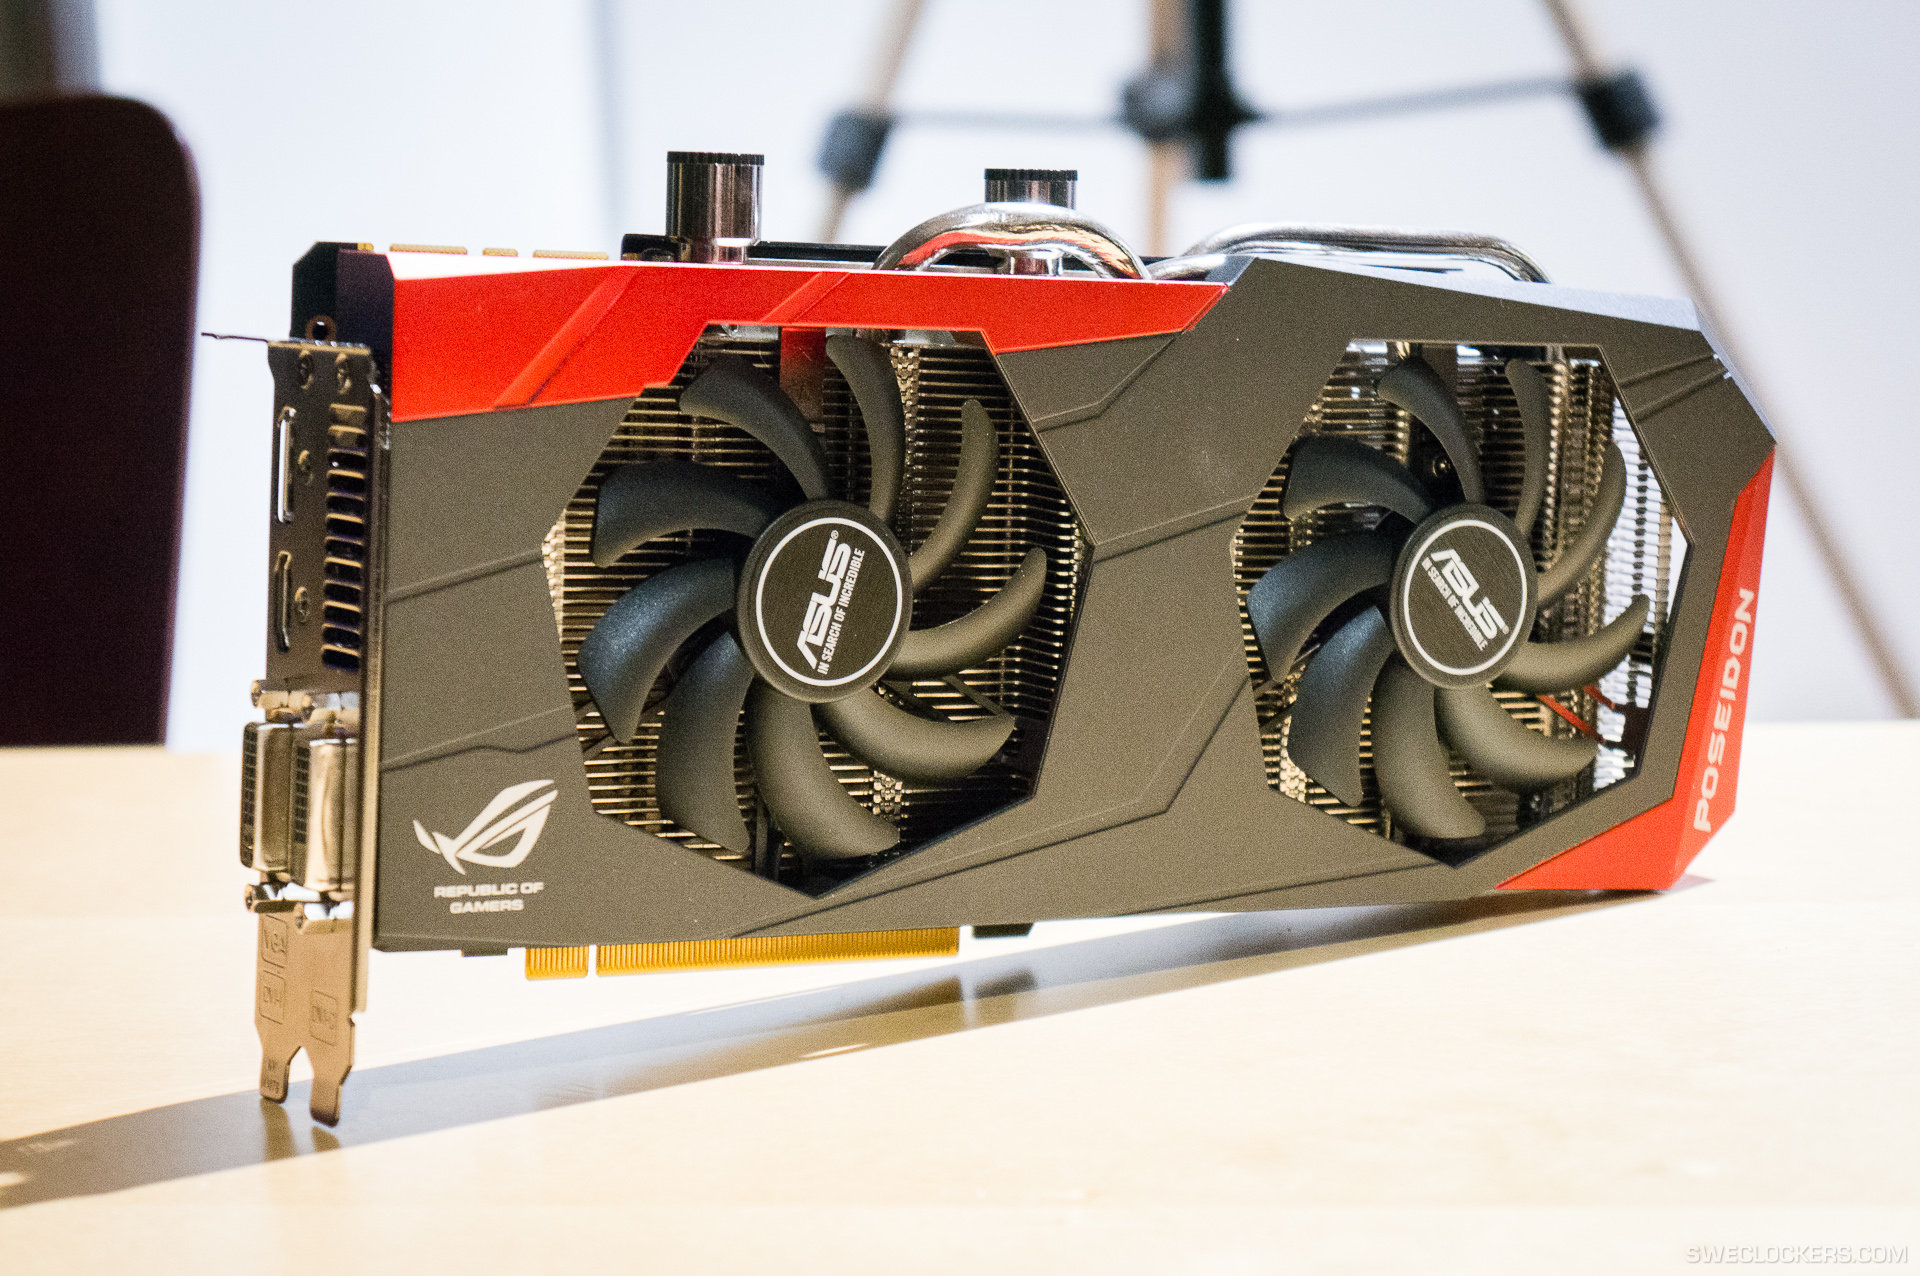 Asus shows off the rog gtx 780 poseidon with hybrid Rogg discount